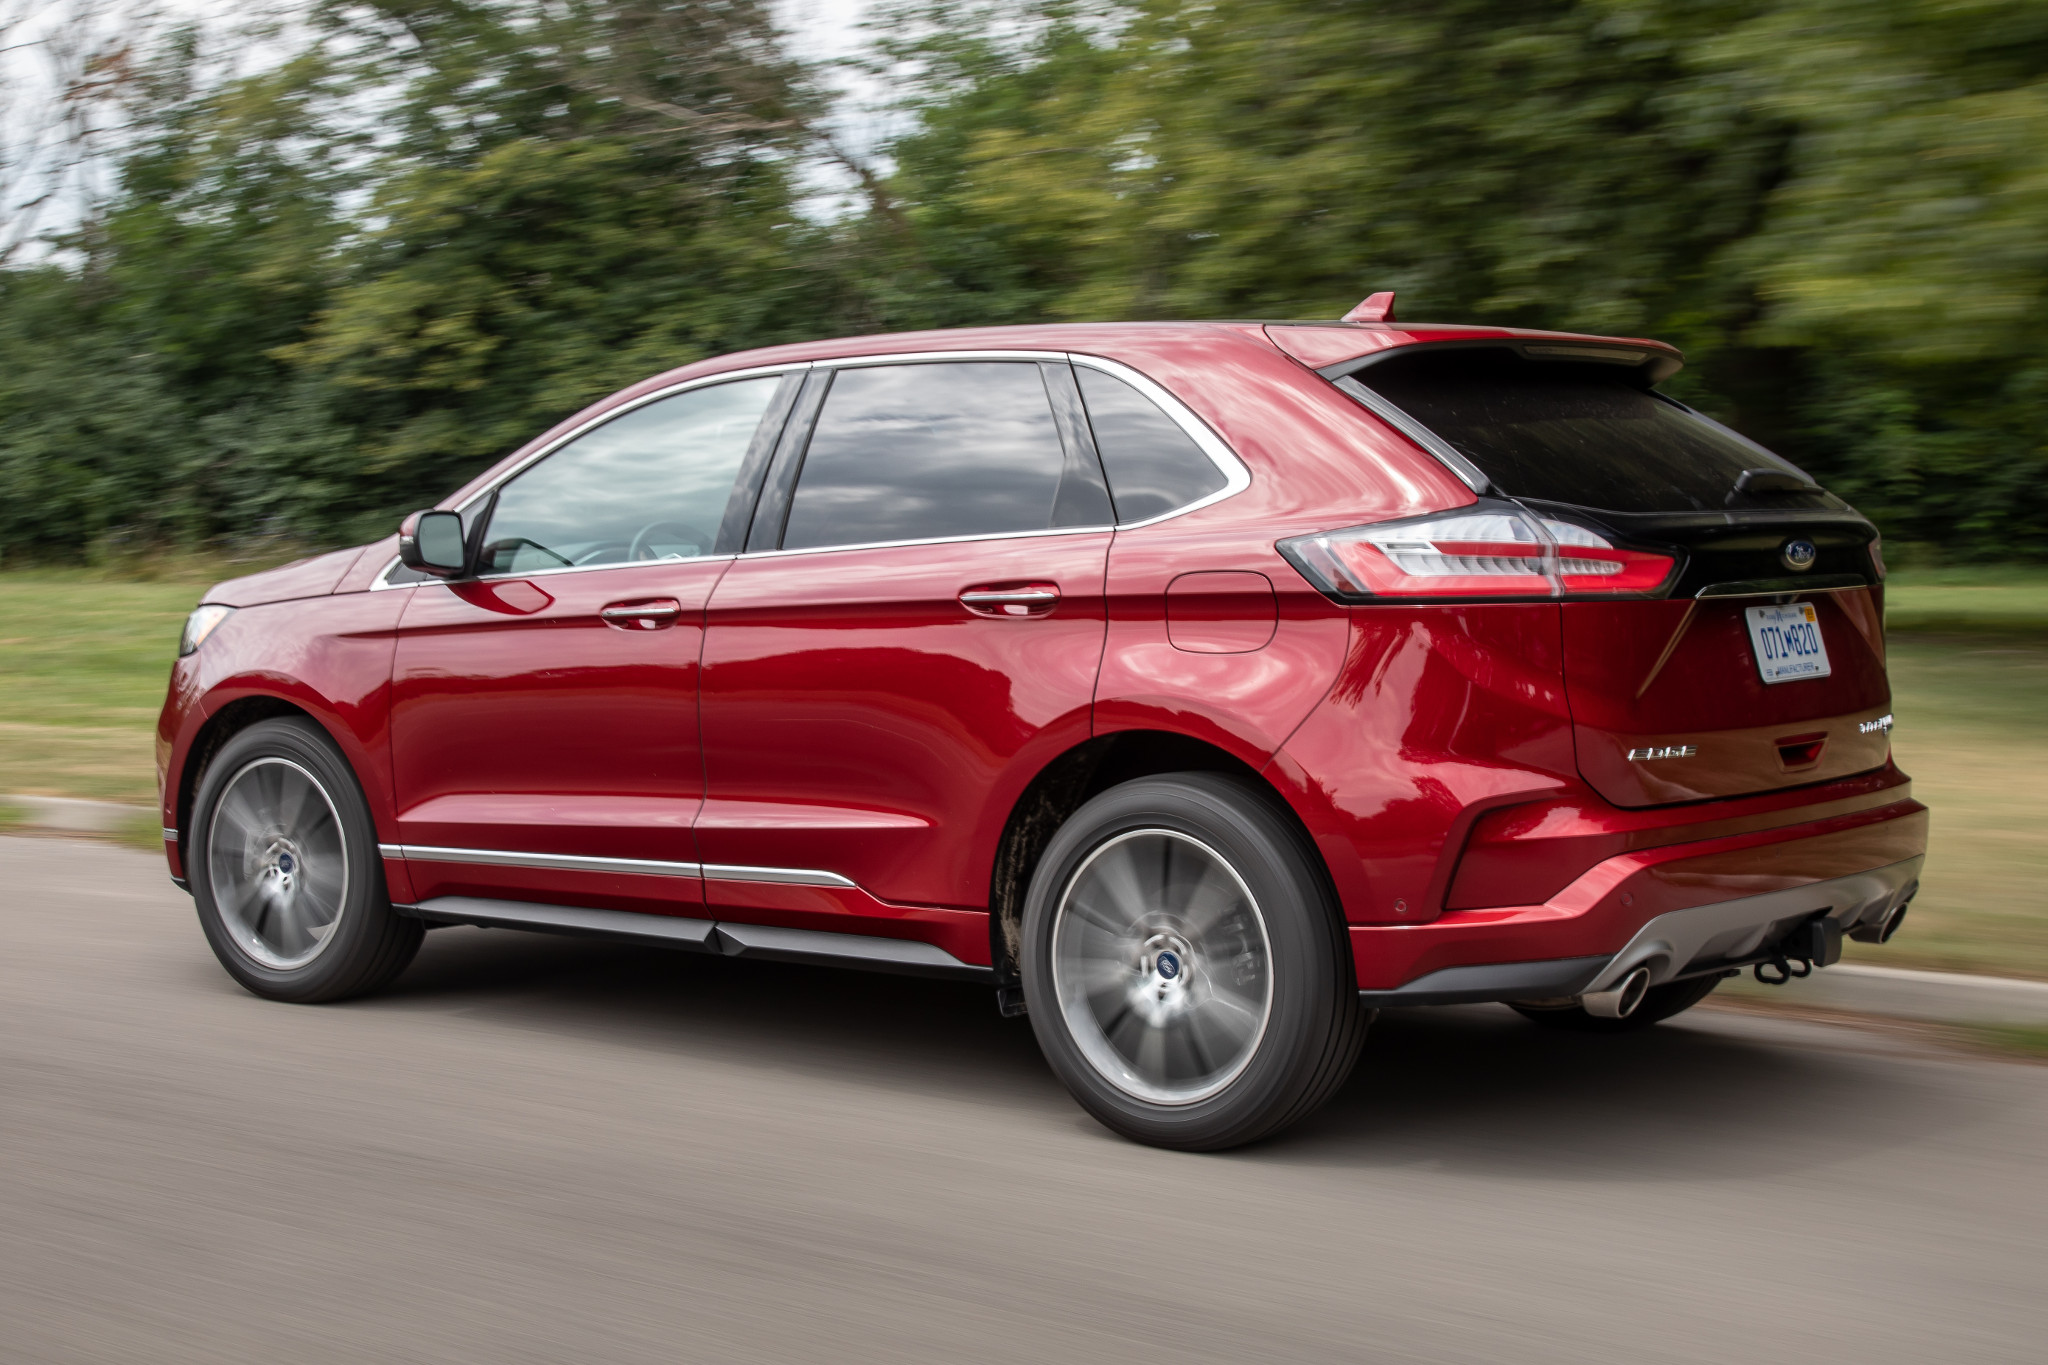 2019 Ford Edge Video: Do Updates Give This Mid-Size SUV an Edge Over Rivals?